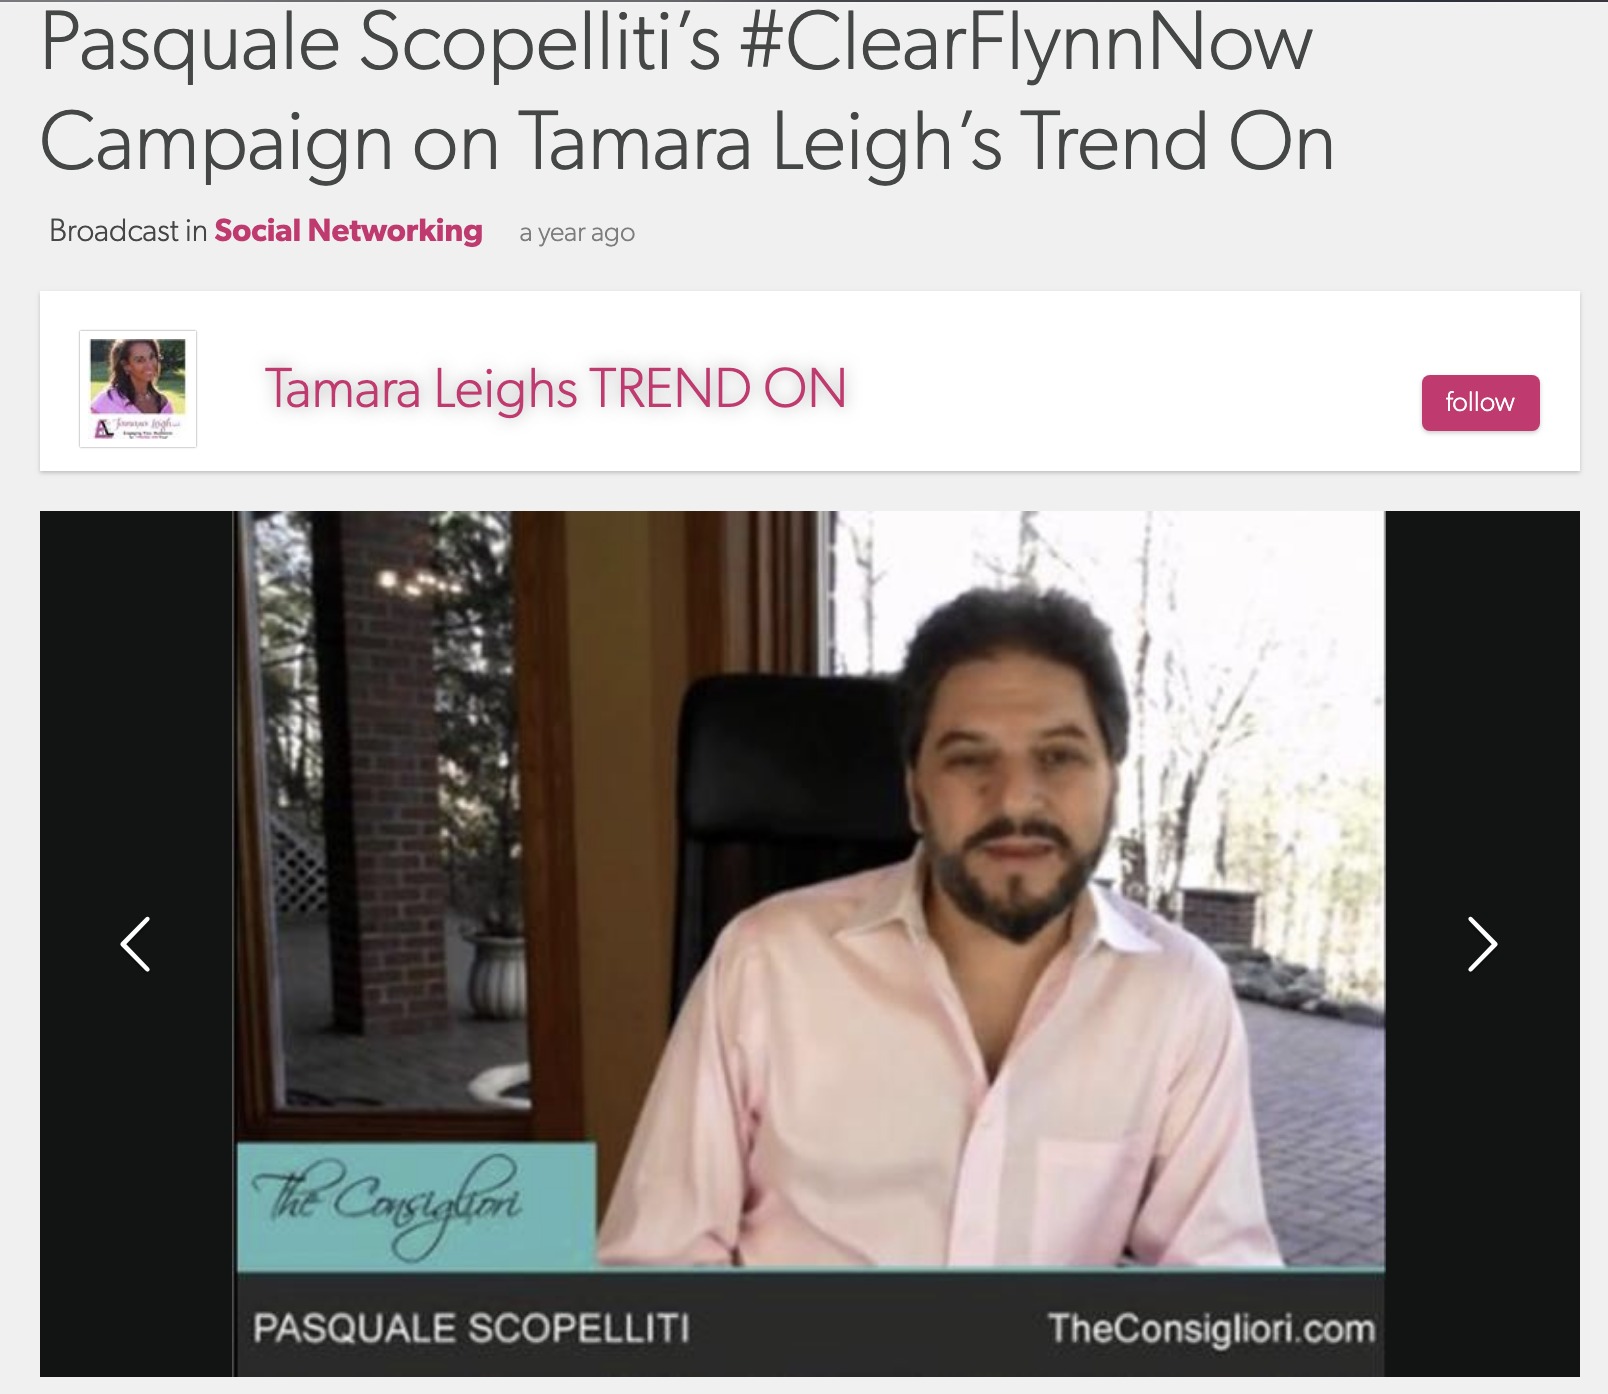 Tamara Leigh's Trend On - with Pasquale Scopelliti #ClearFlynnNow Part 1